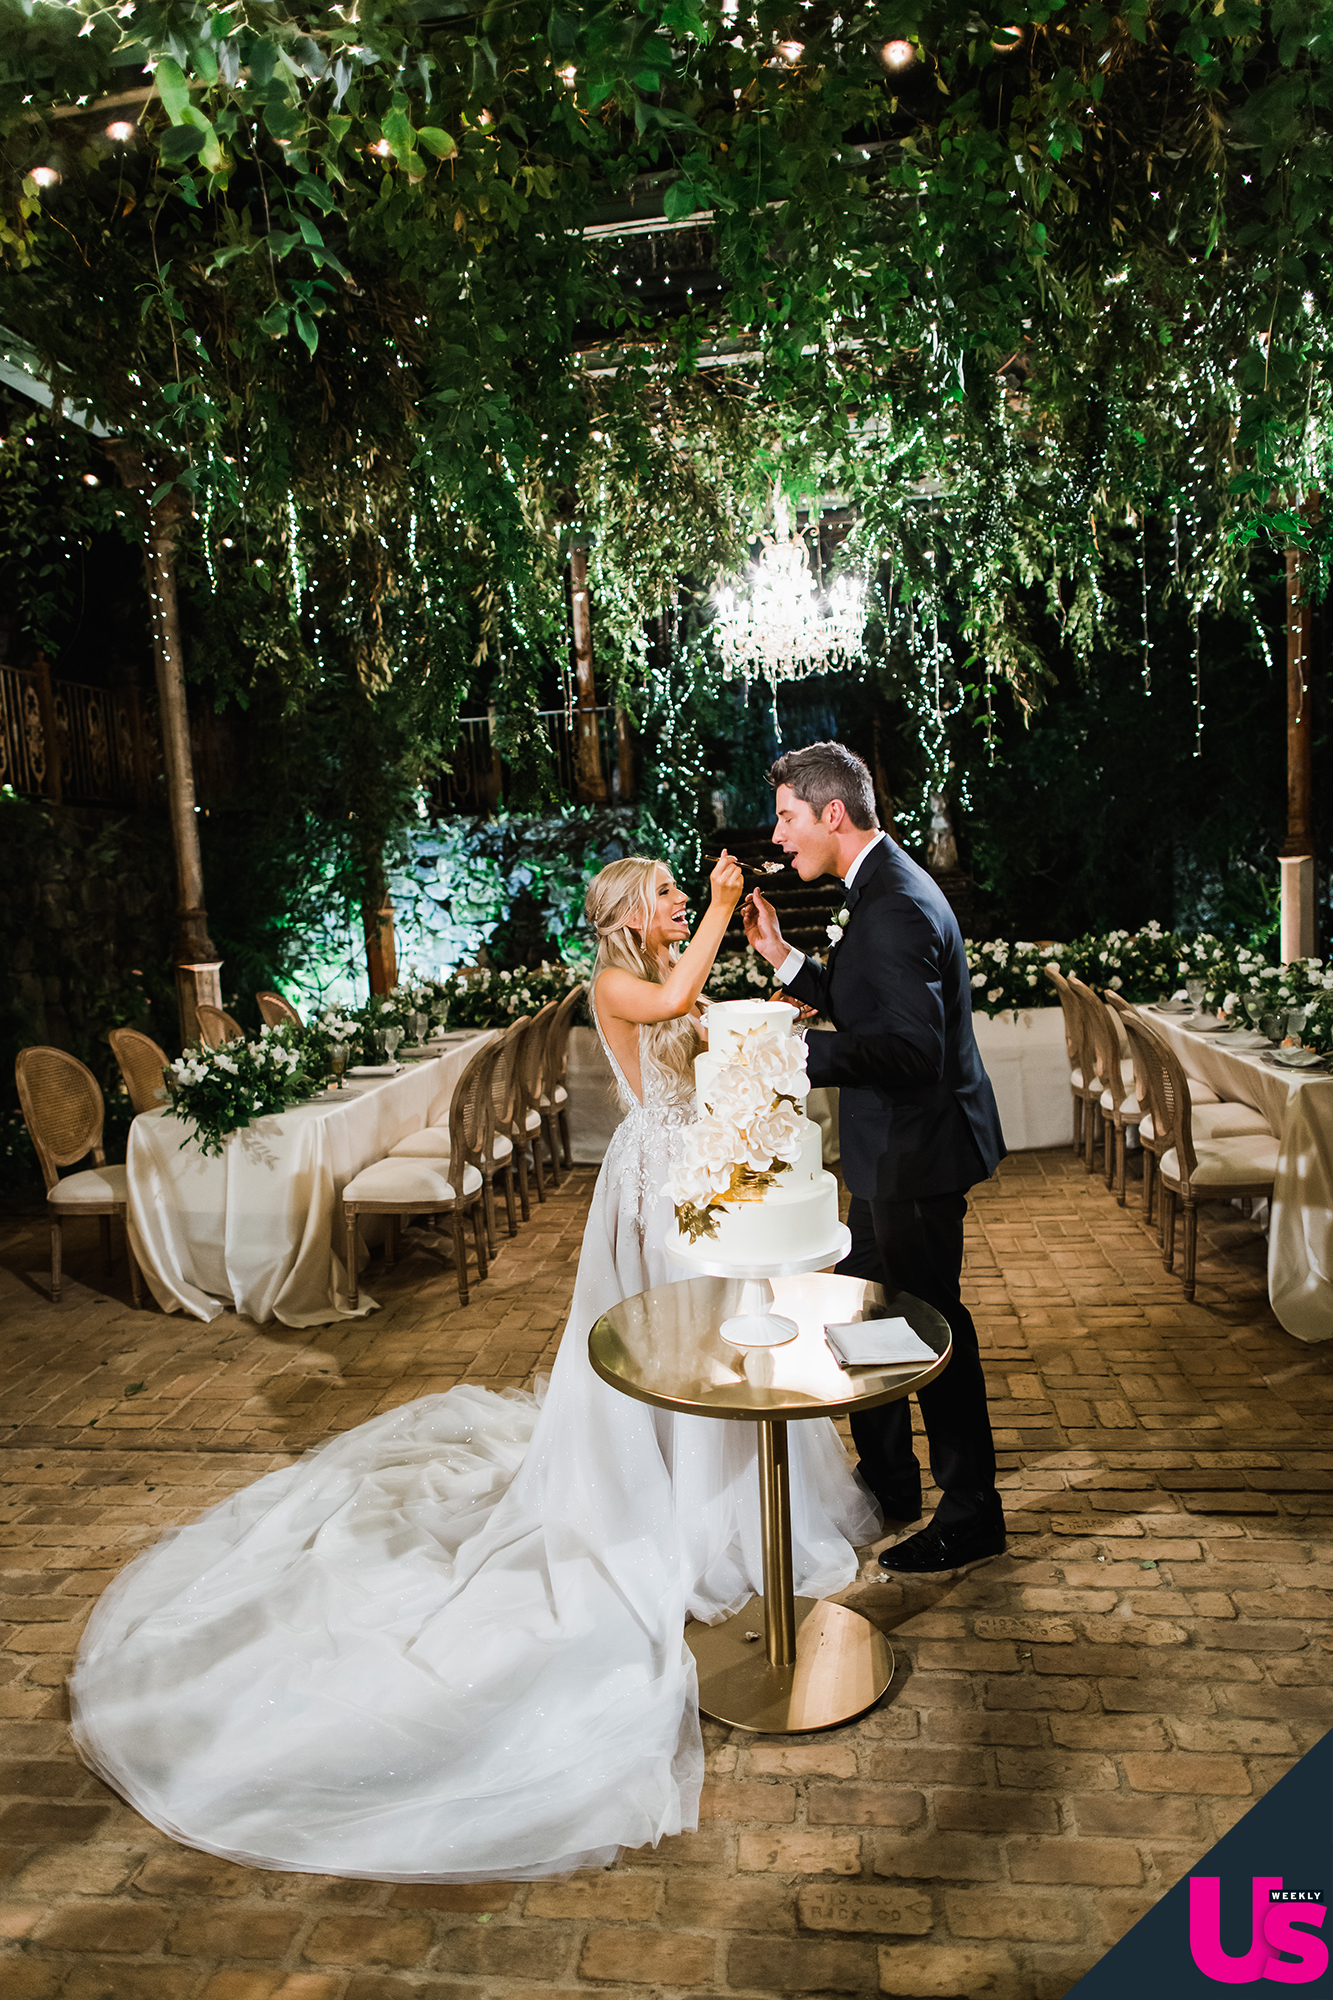 """Arie-Luyendyk-Jr. -and-Lauren-Burnham-Wedding - The wedding planner also noted that Burnham was crazy about the """"twinkle lights and hanging greens"""" during the big day."""